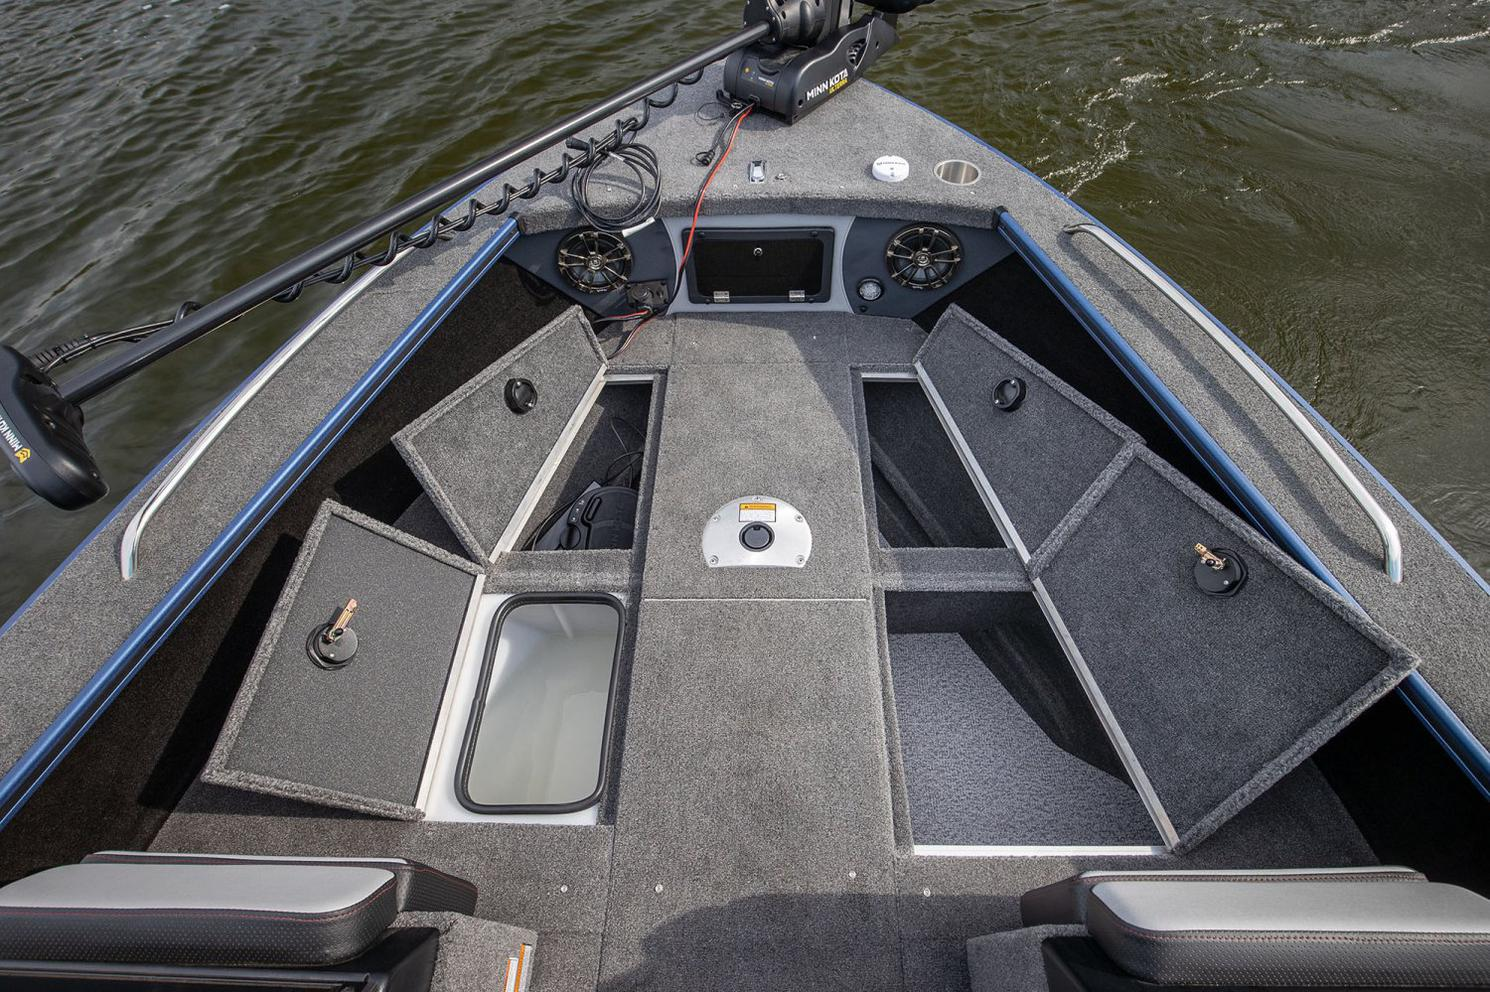 2021 Alumacraft boat for sale, model of the boat is TROPHY 205 & Image # 3 of 5